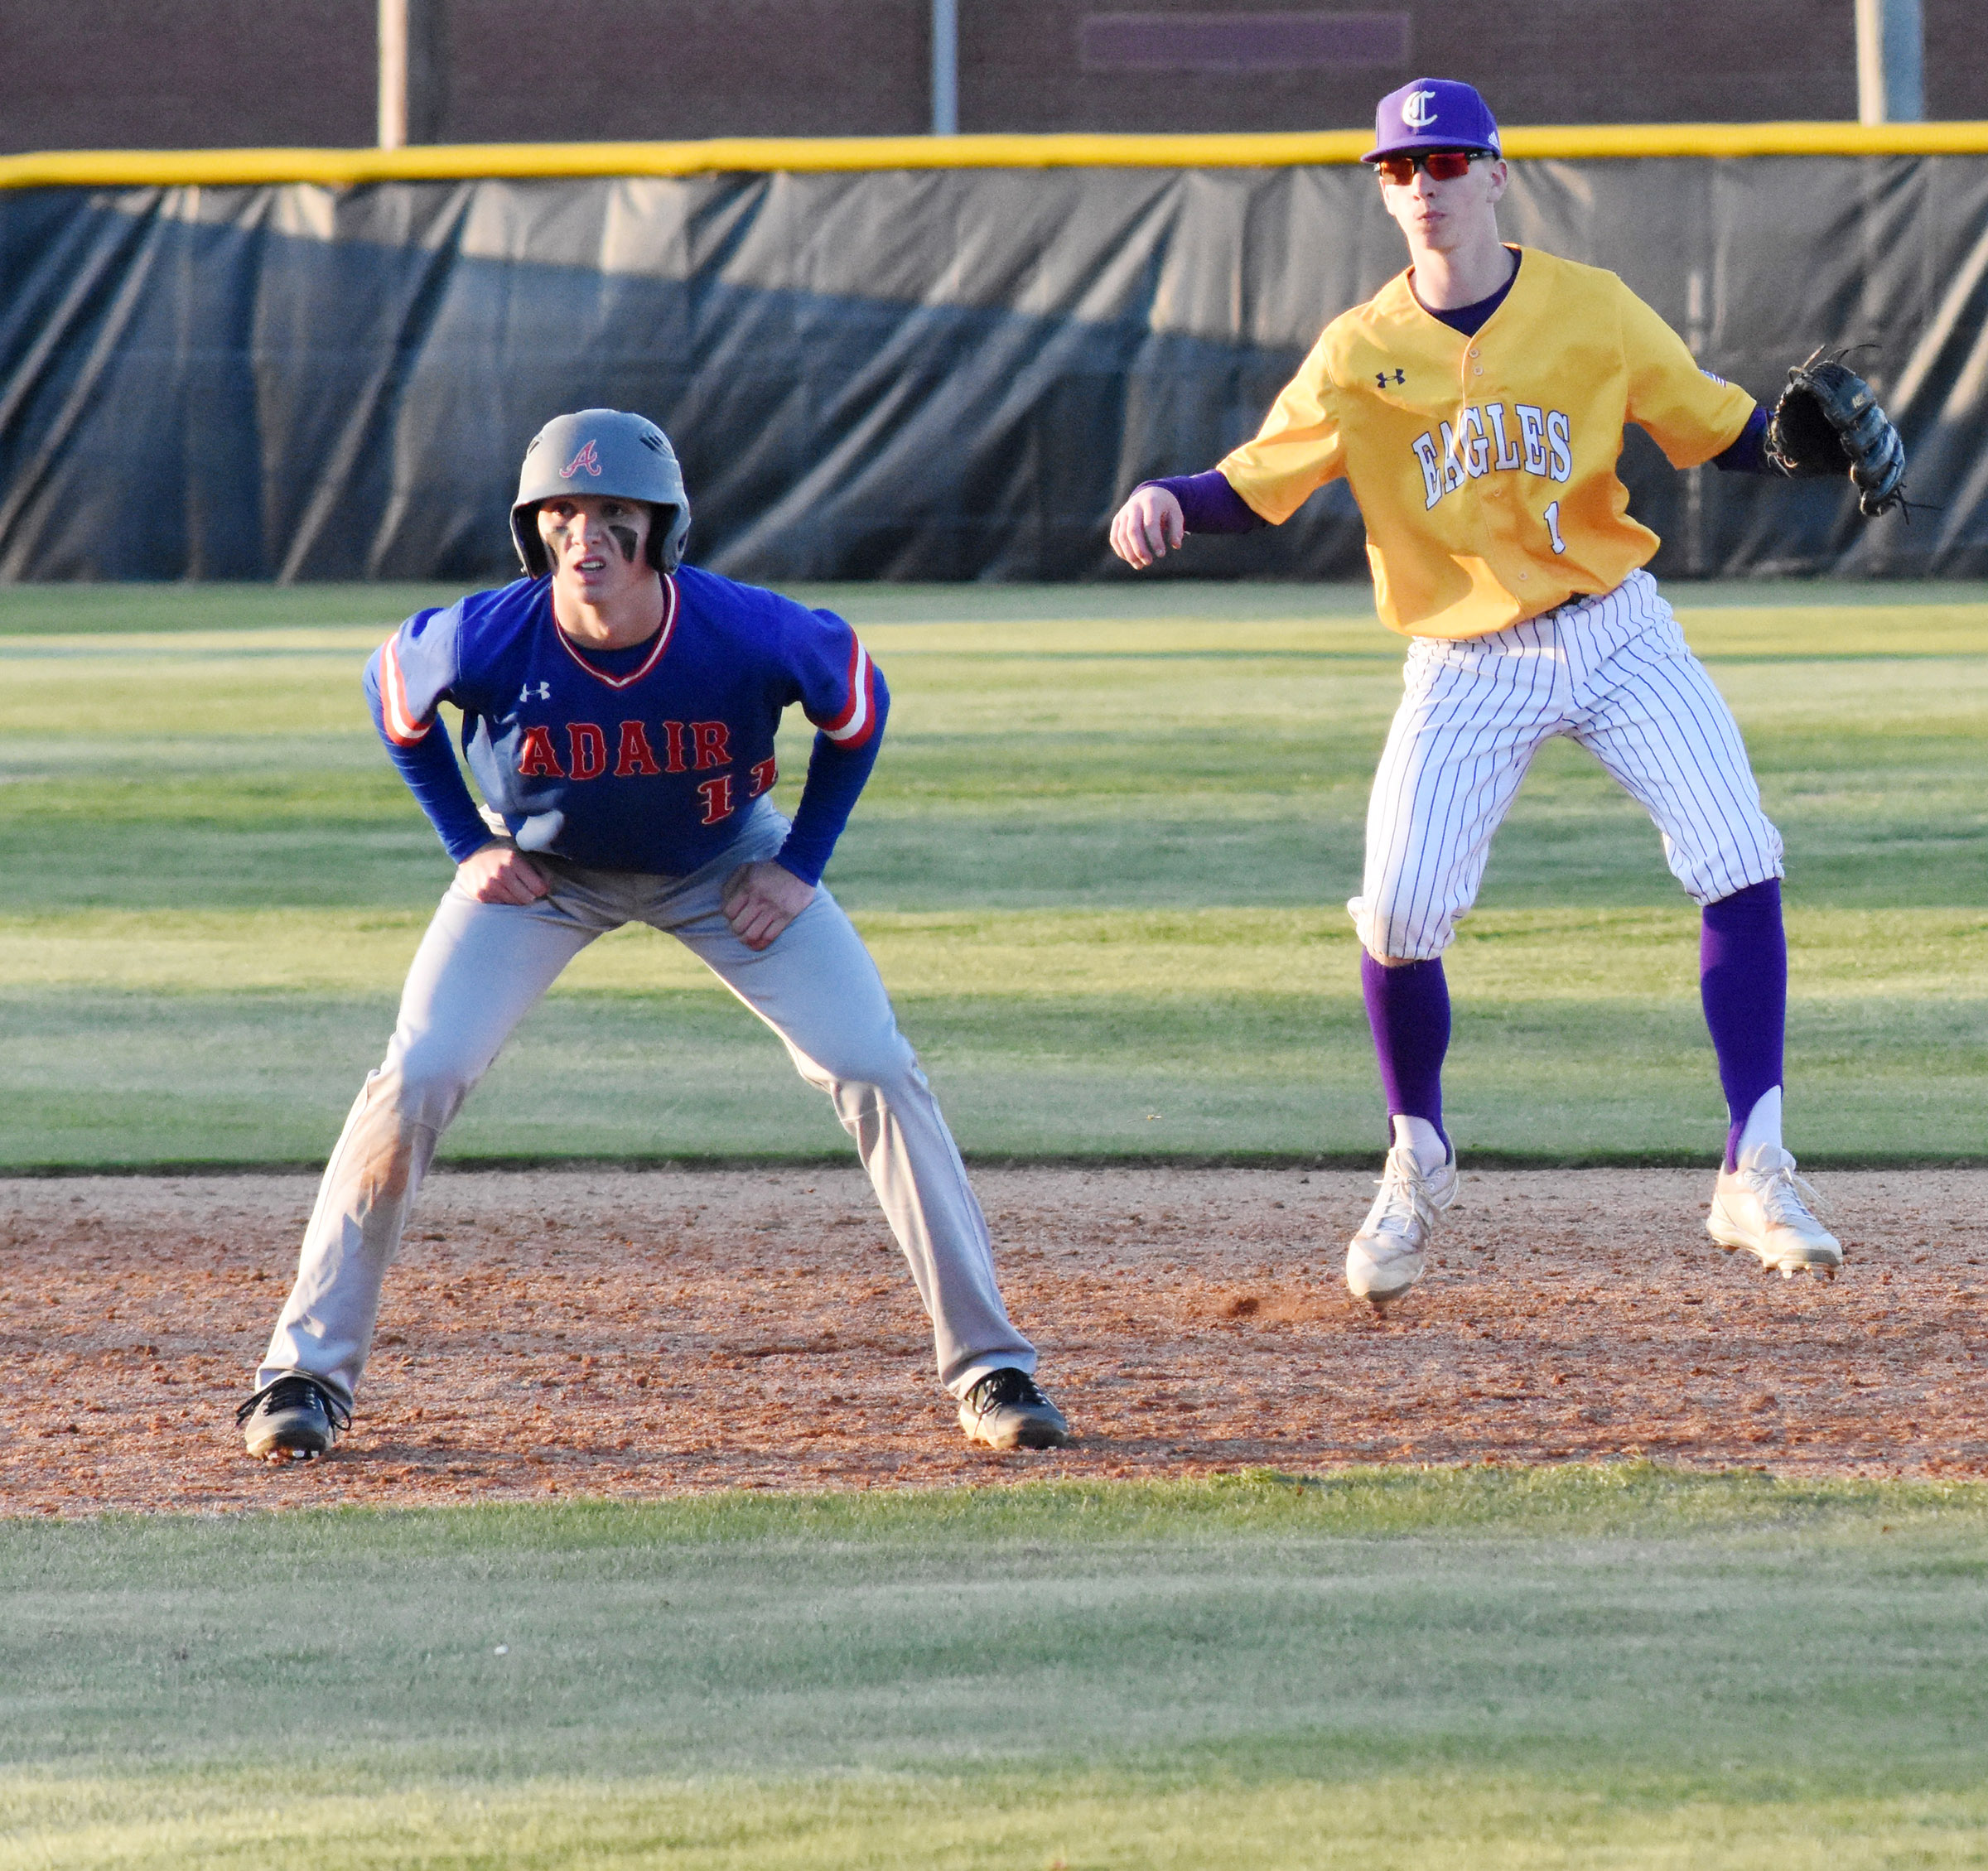 CHS freshman Arren Hash keeps the runner close at second.